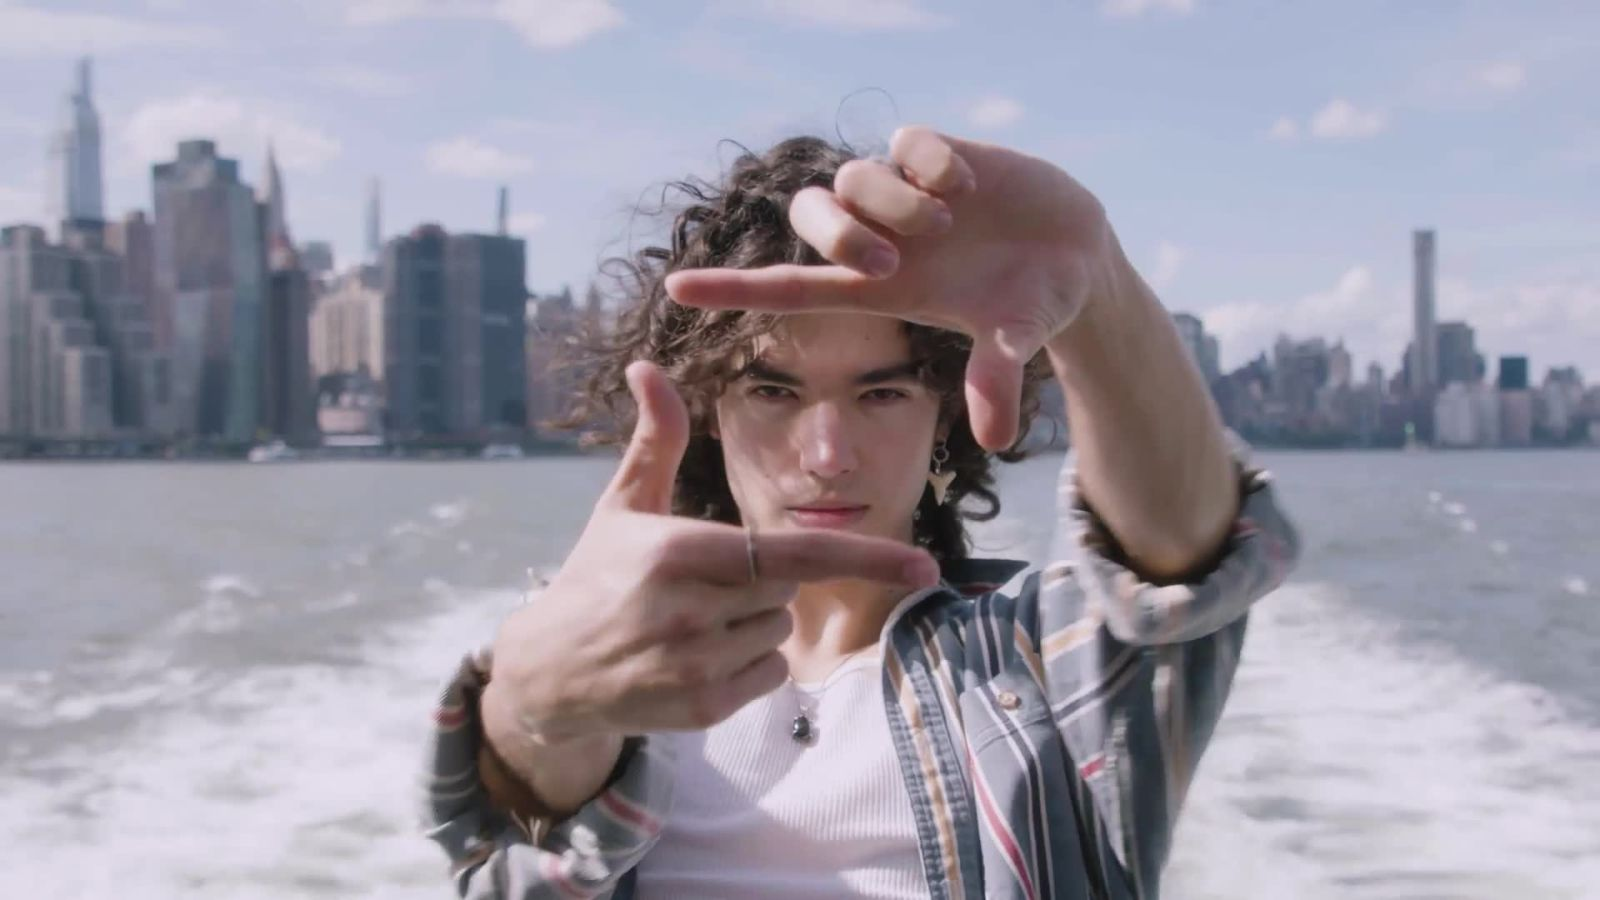 24 Hours With Conan Gray as He Moves to New York